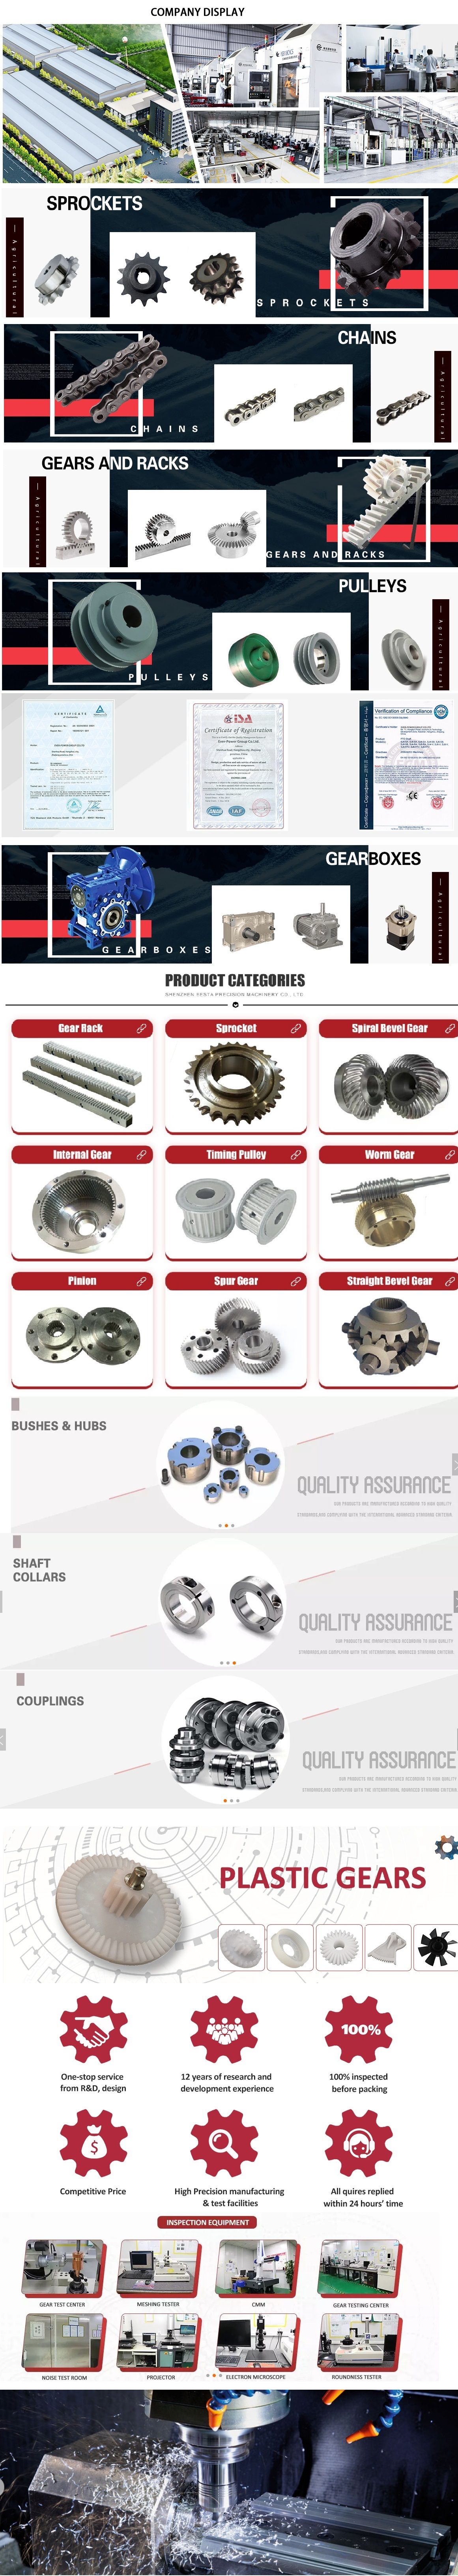 in Irkutsk Russian Federation  sales   price   shop   near me   near me shop   factory   supplier Duoling Brand H4hh16 Gearbox Used for Metallurgy manufacturer   best   Cost   Custom   Cheap   wholesaler